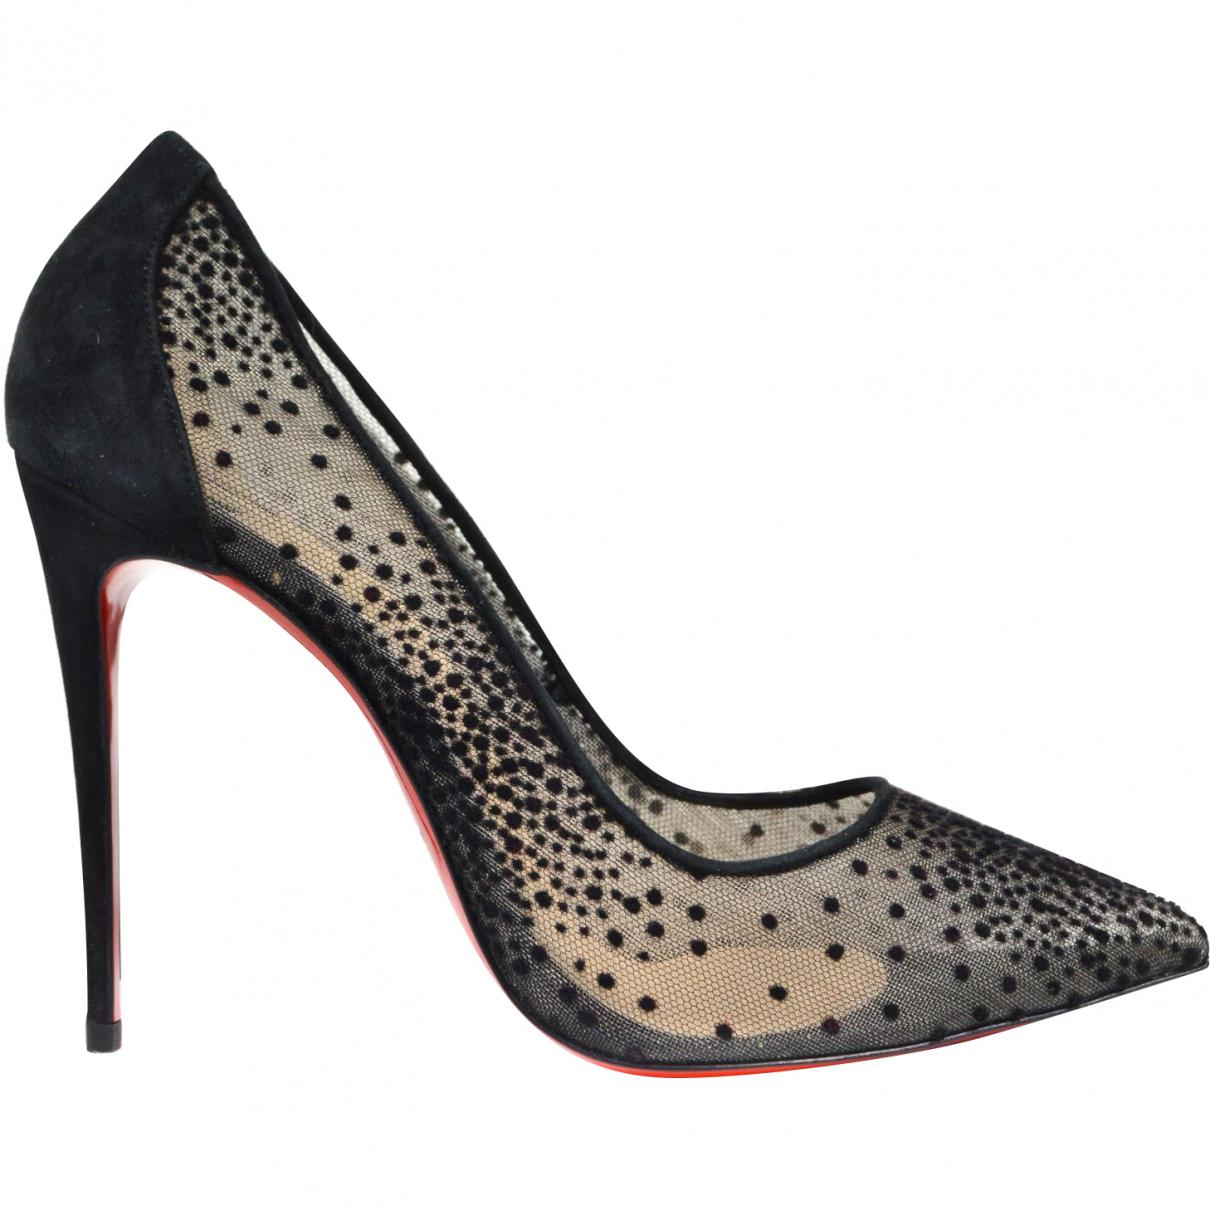 Pre-owned - Heels Christian Louboutin Discount Outlet Store e7cQwH